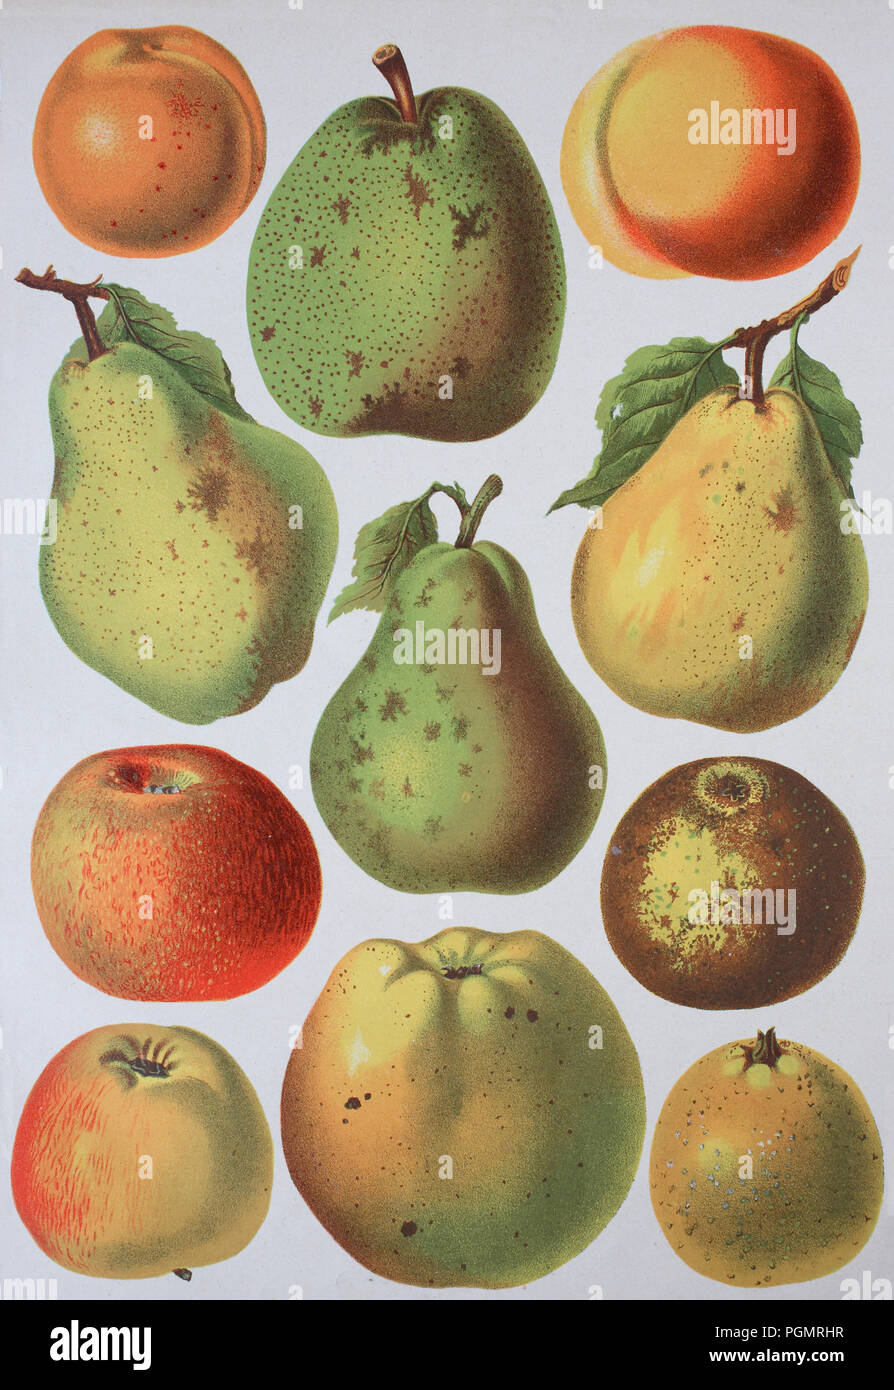 fruit growing, various apples and pears, apple varieties, digital improved reproduction of a woodcut from the year 1880 - Stock Image